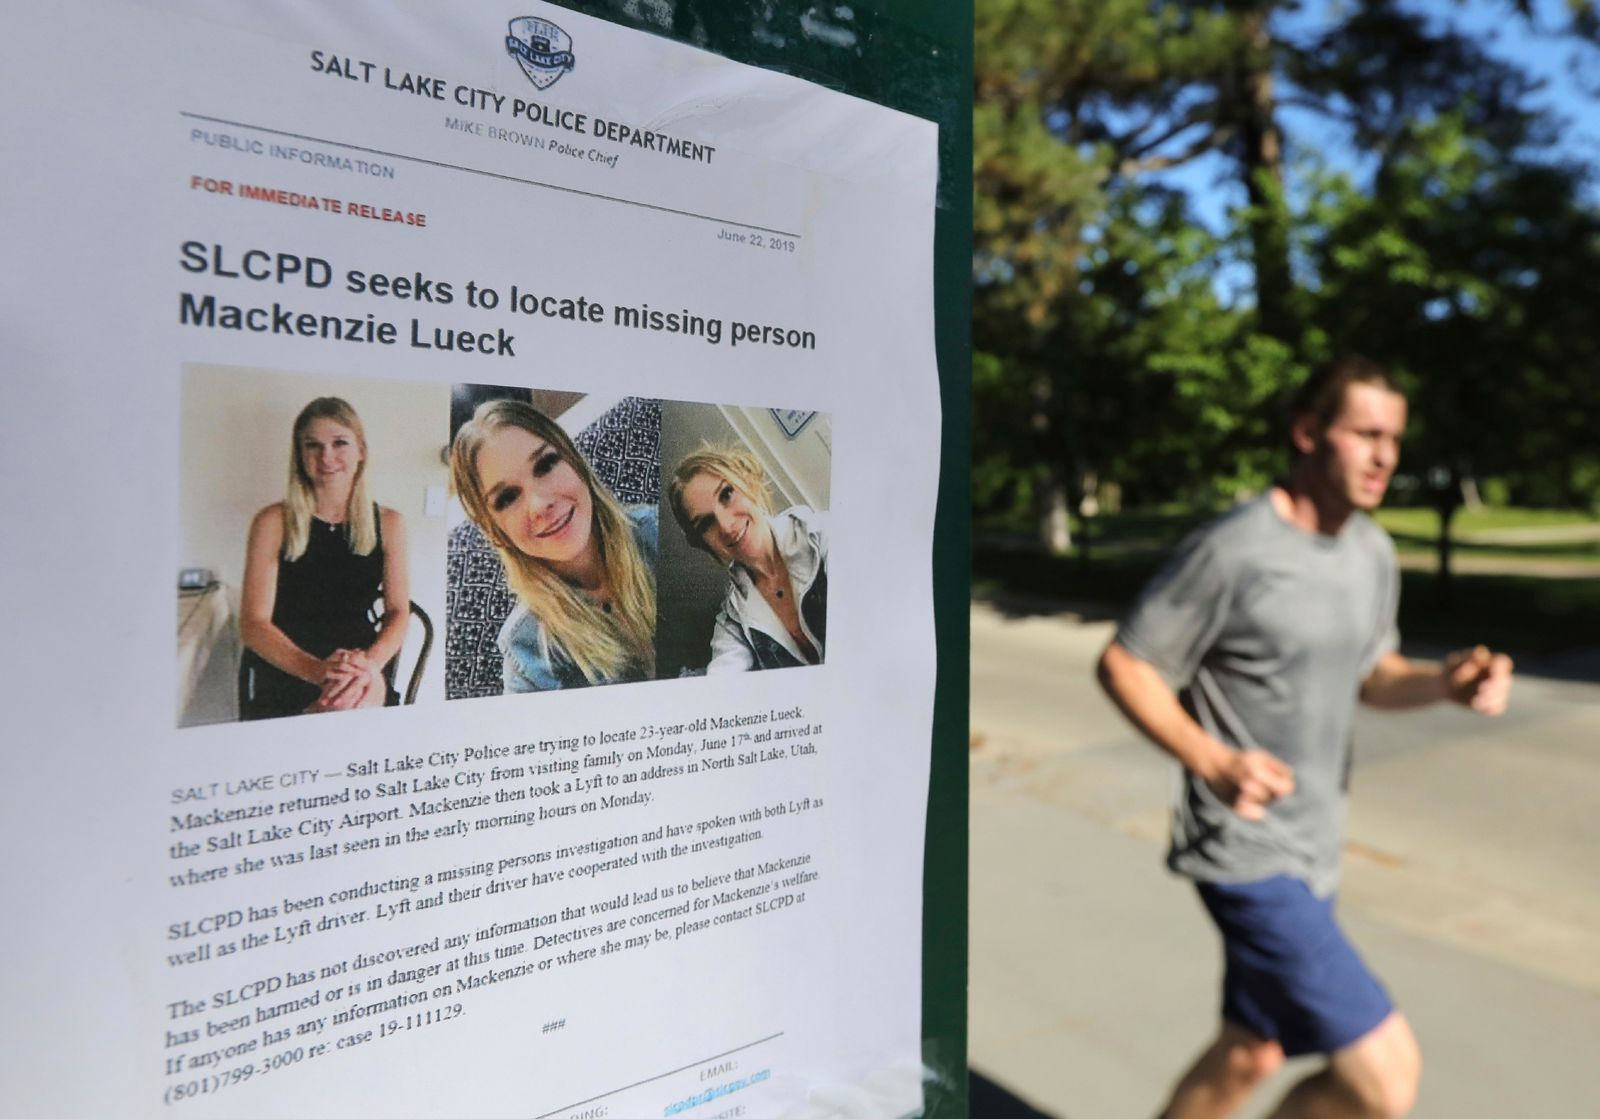 CORRECTS SPELLING OF LUECK - A joggers runs pass a poster of MacKenzie Lueck at Liberty Park Monday, June 24, 2019, in Salt Lake City. Police and friends are investigating the disappearance of the 23-year-old University of Utah student, whose last communication with her family said she arrived at Salt Lake City International Airport on Monday, June 17. (AP Photo/Rick Bowmer)